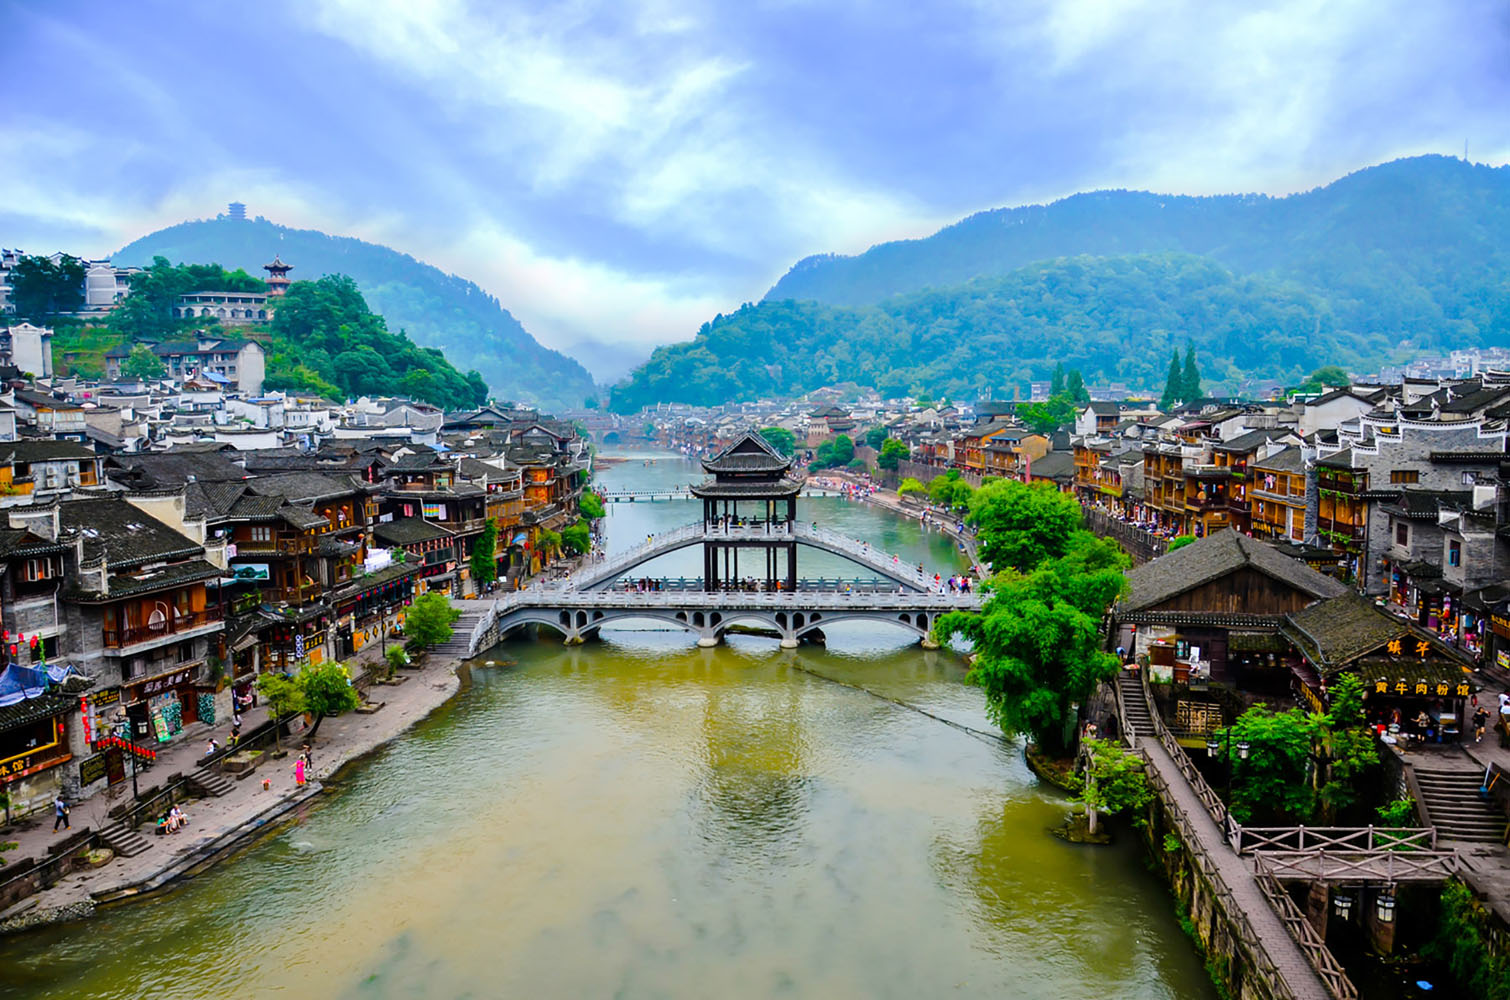 Old houses along the water in Fenghuang county in Hunan, China.